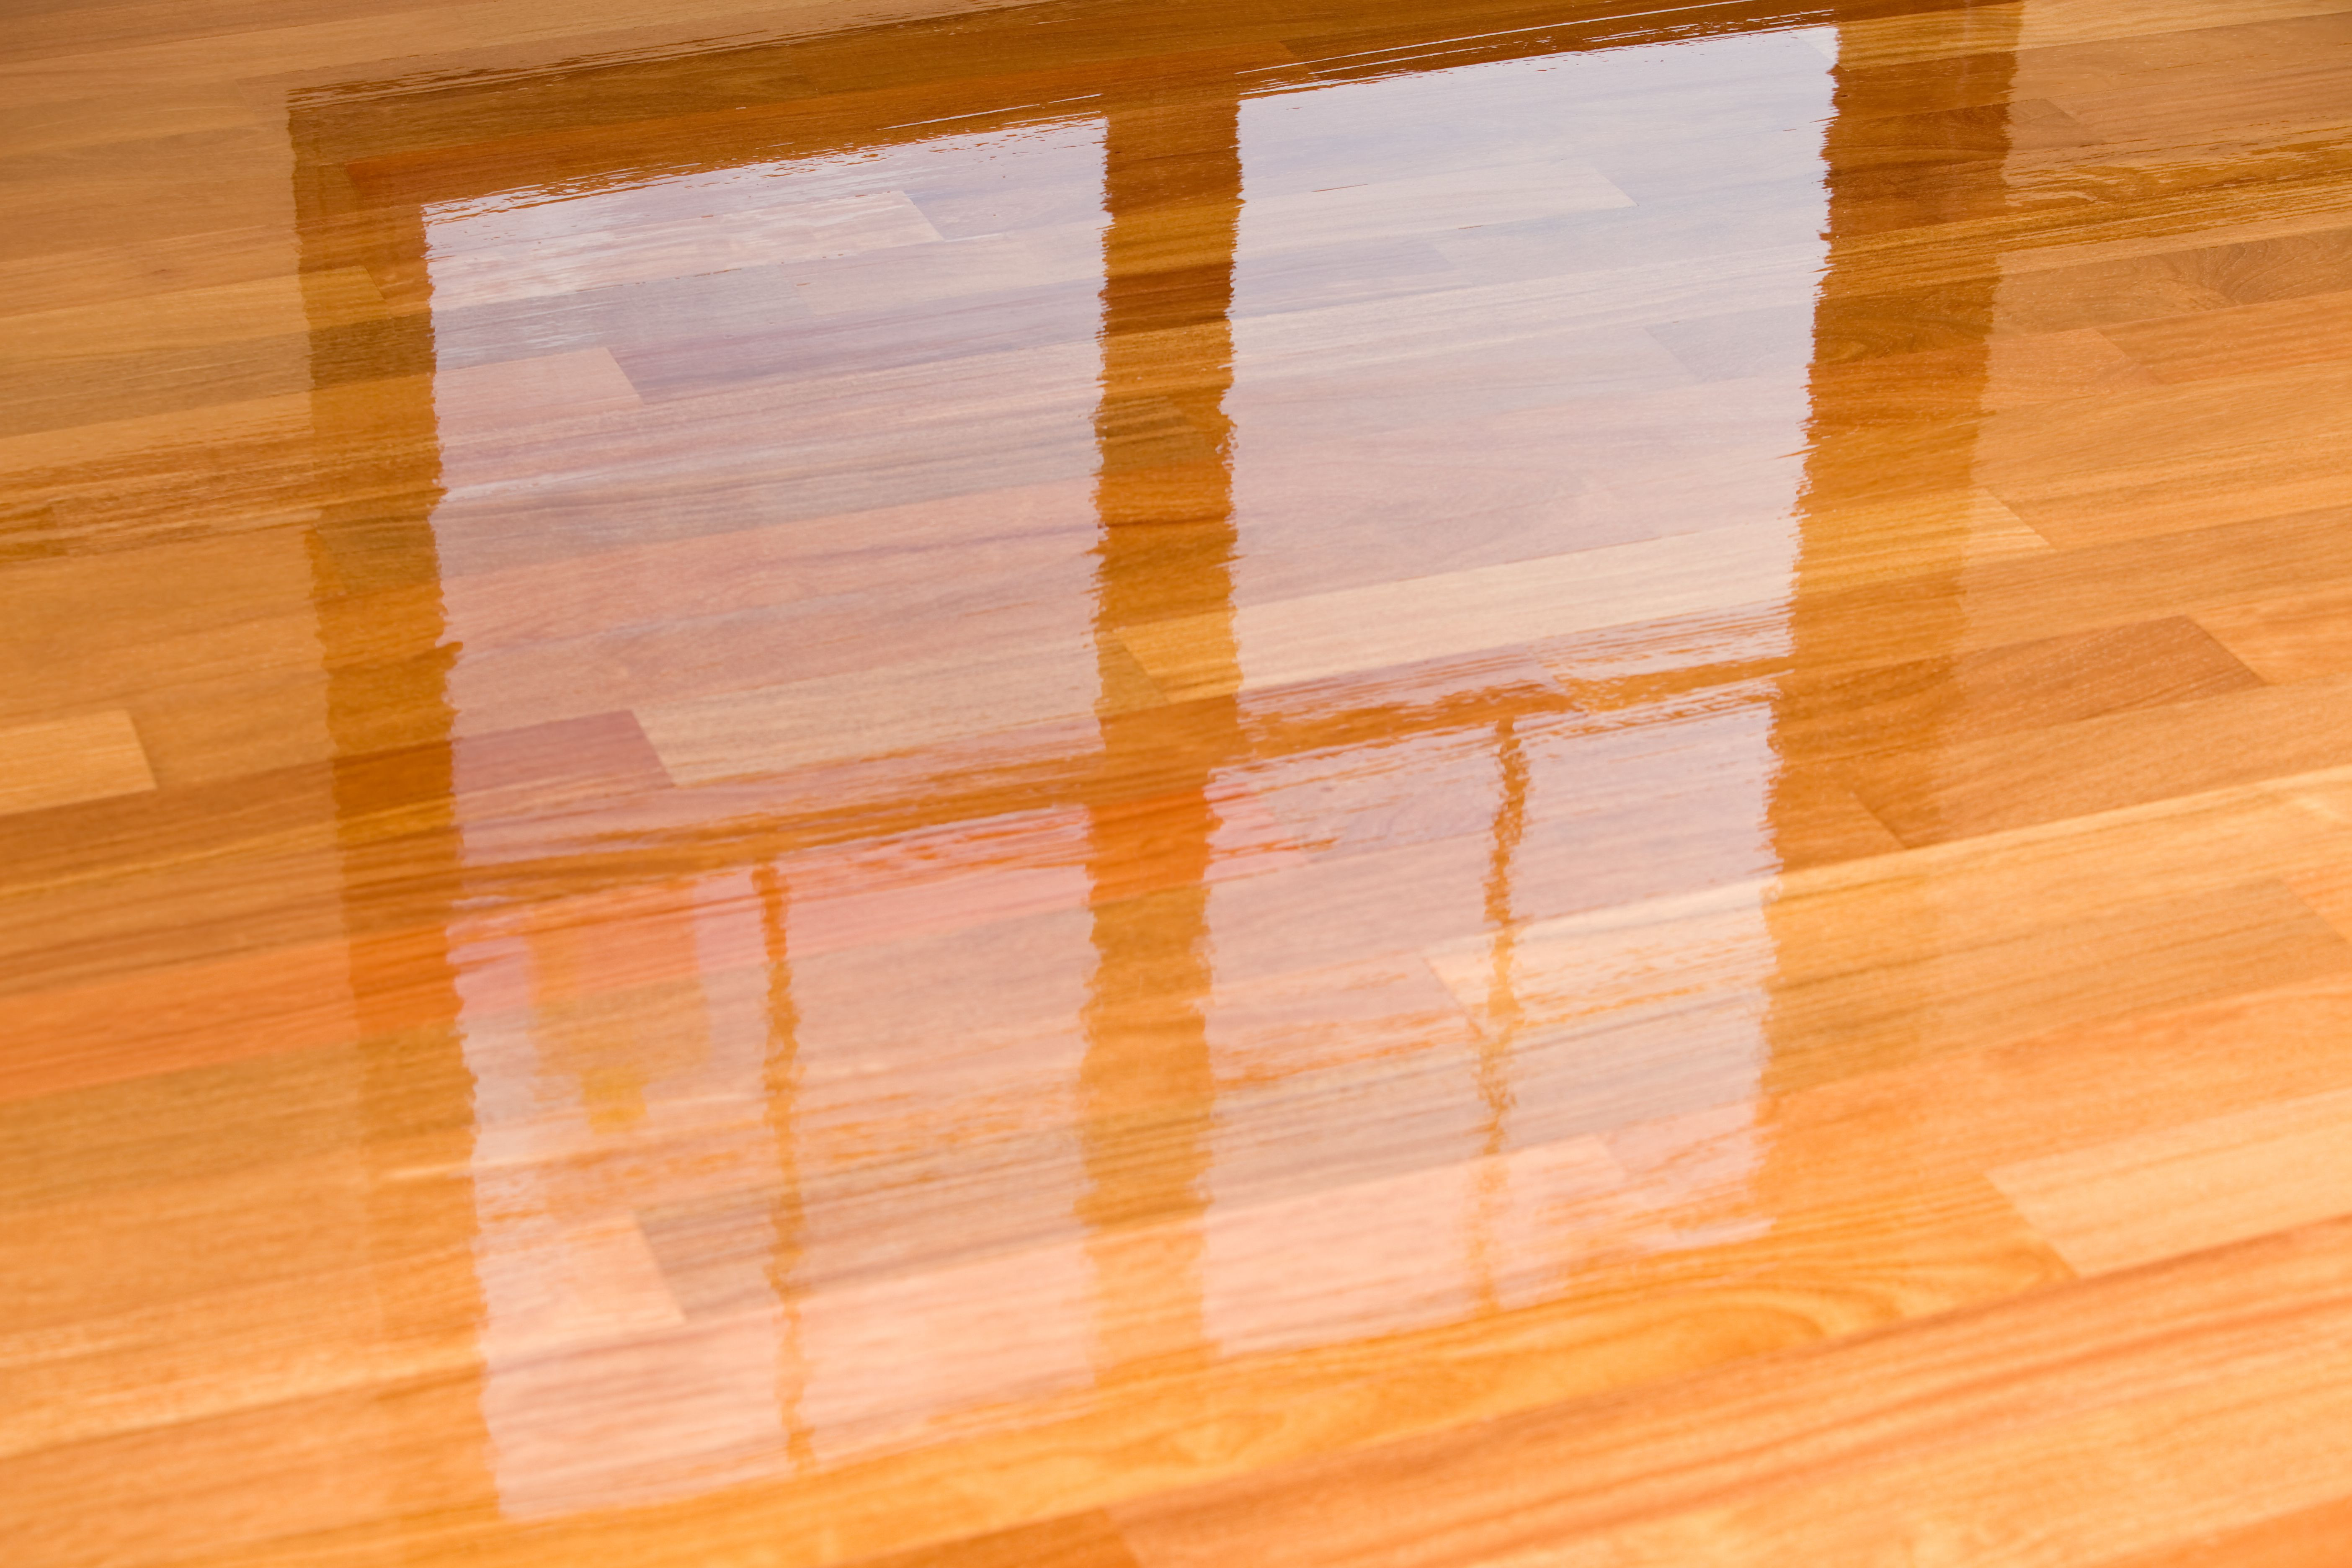 hardwood flooring spokane of guide to laminate flooring water and damage repair within wet polyurethane on new hardwood floor with window reflection 183846705 582e34da3df78c6f6a403968